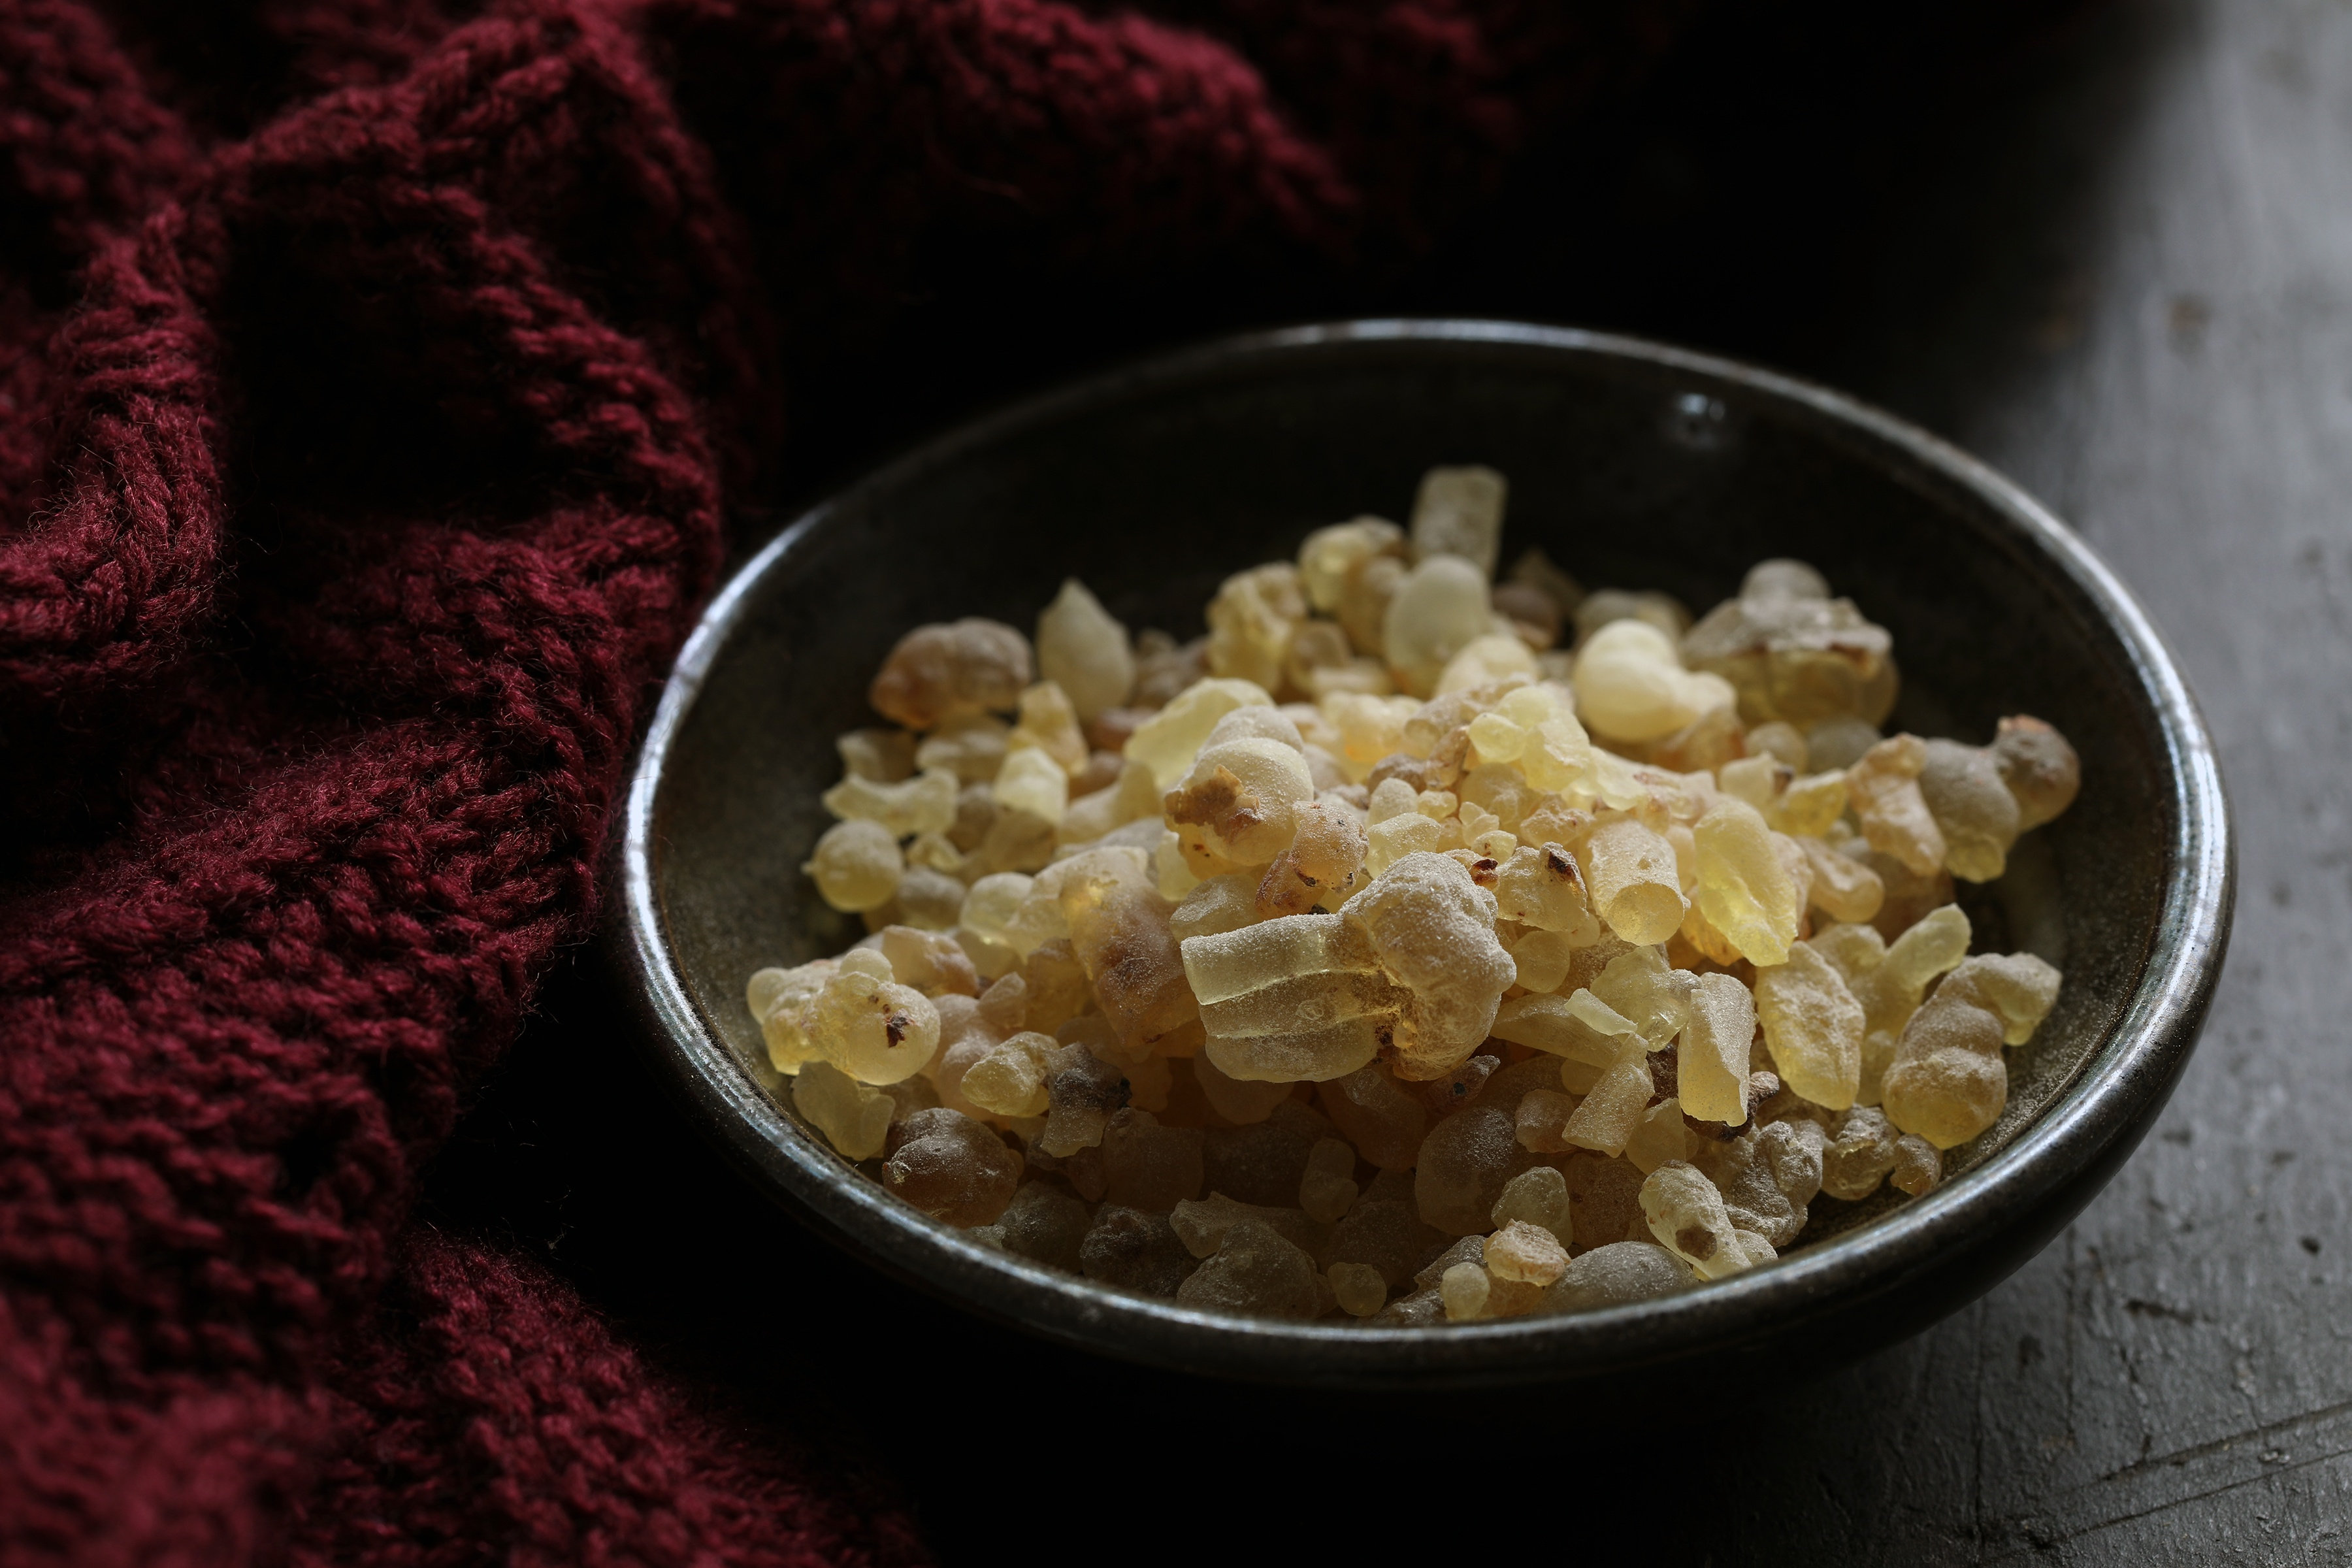 frankincense tears in a dark bowl next to a red knit scarf